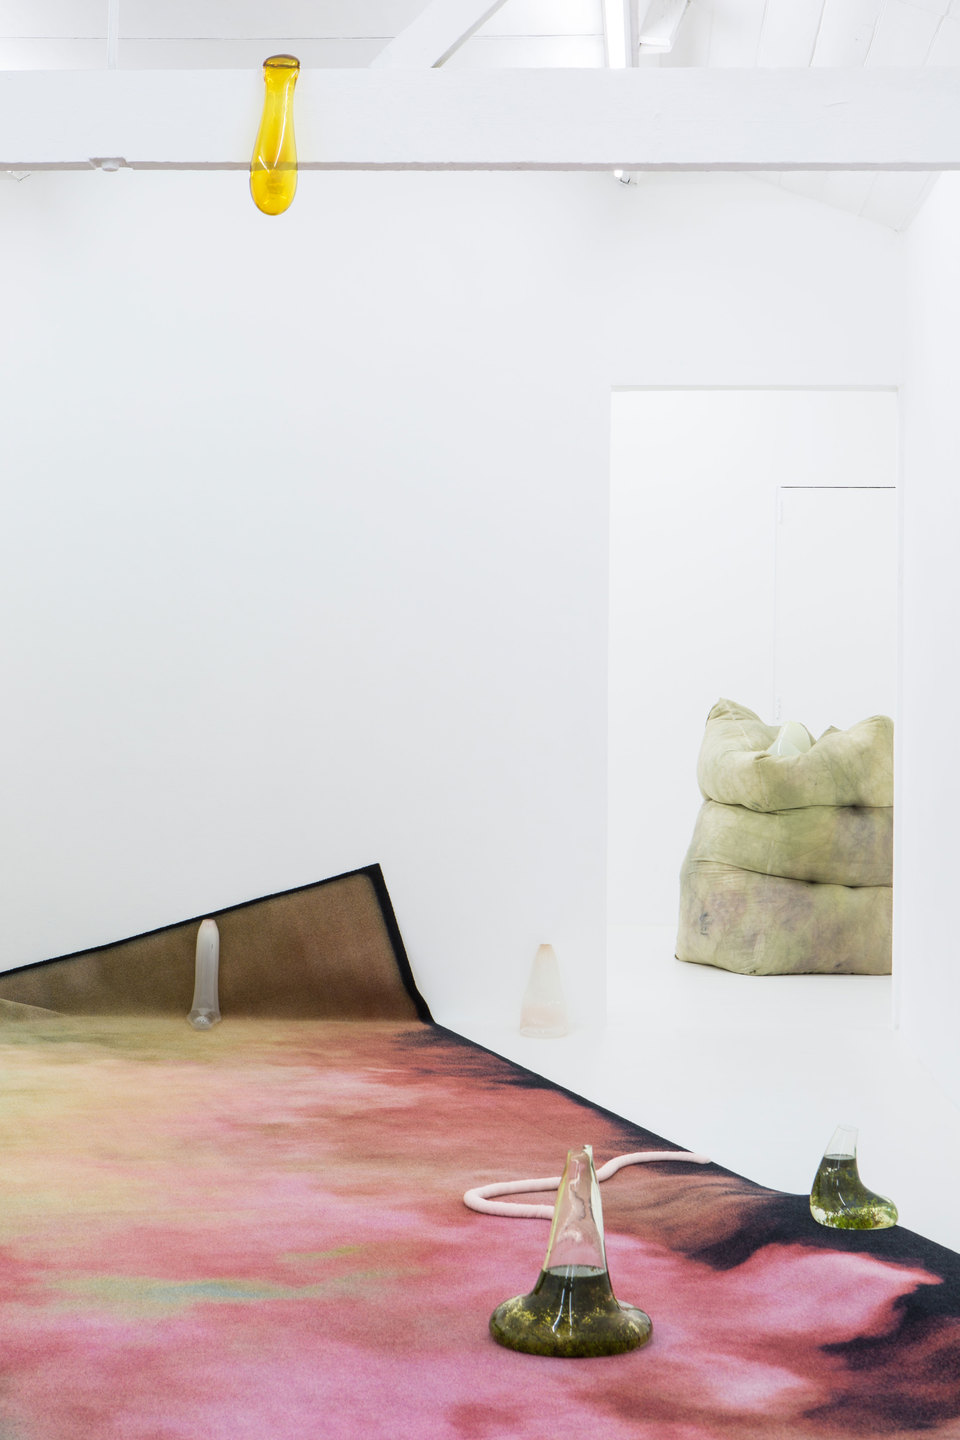 Julia Crabtree & William Evans, Gullet, 2017, Installation View, Cell Project Space